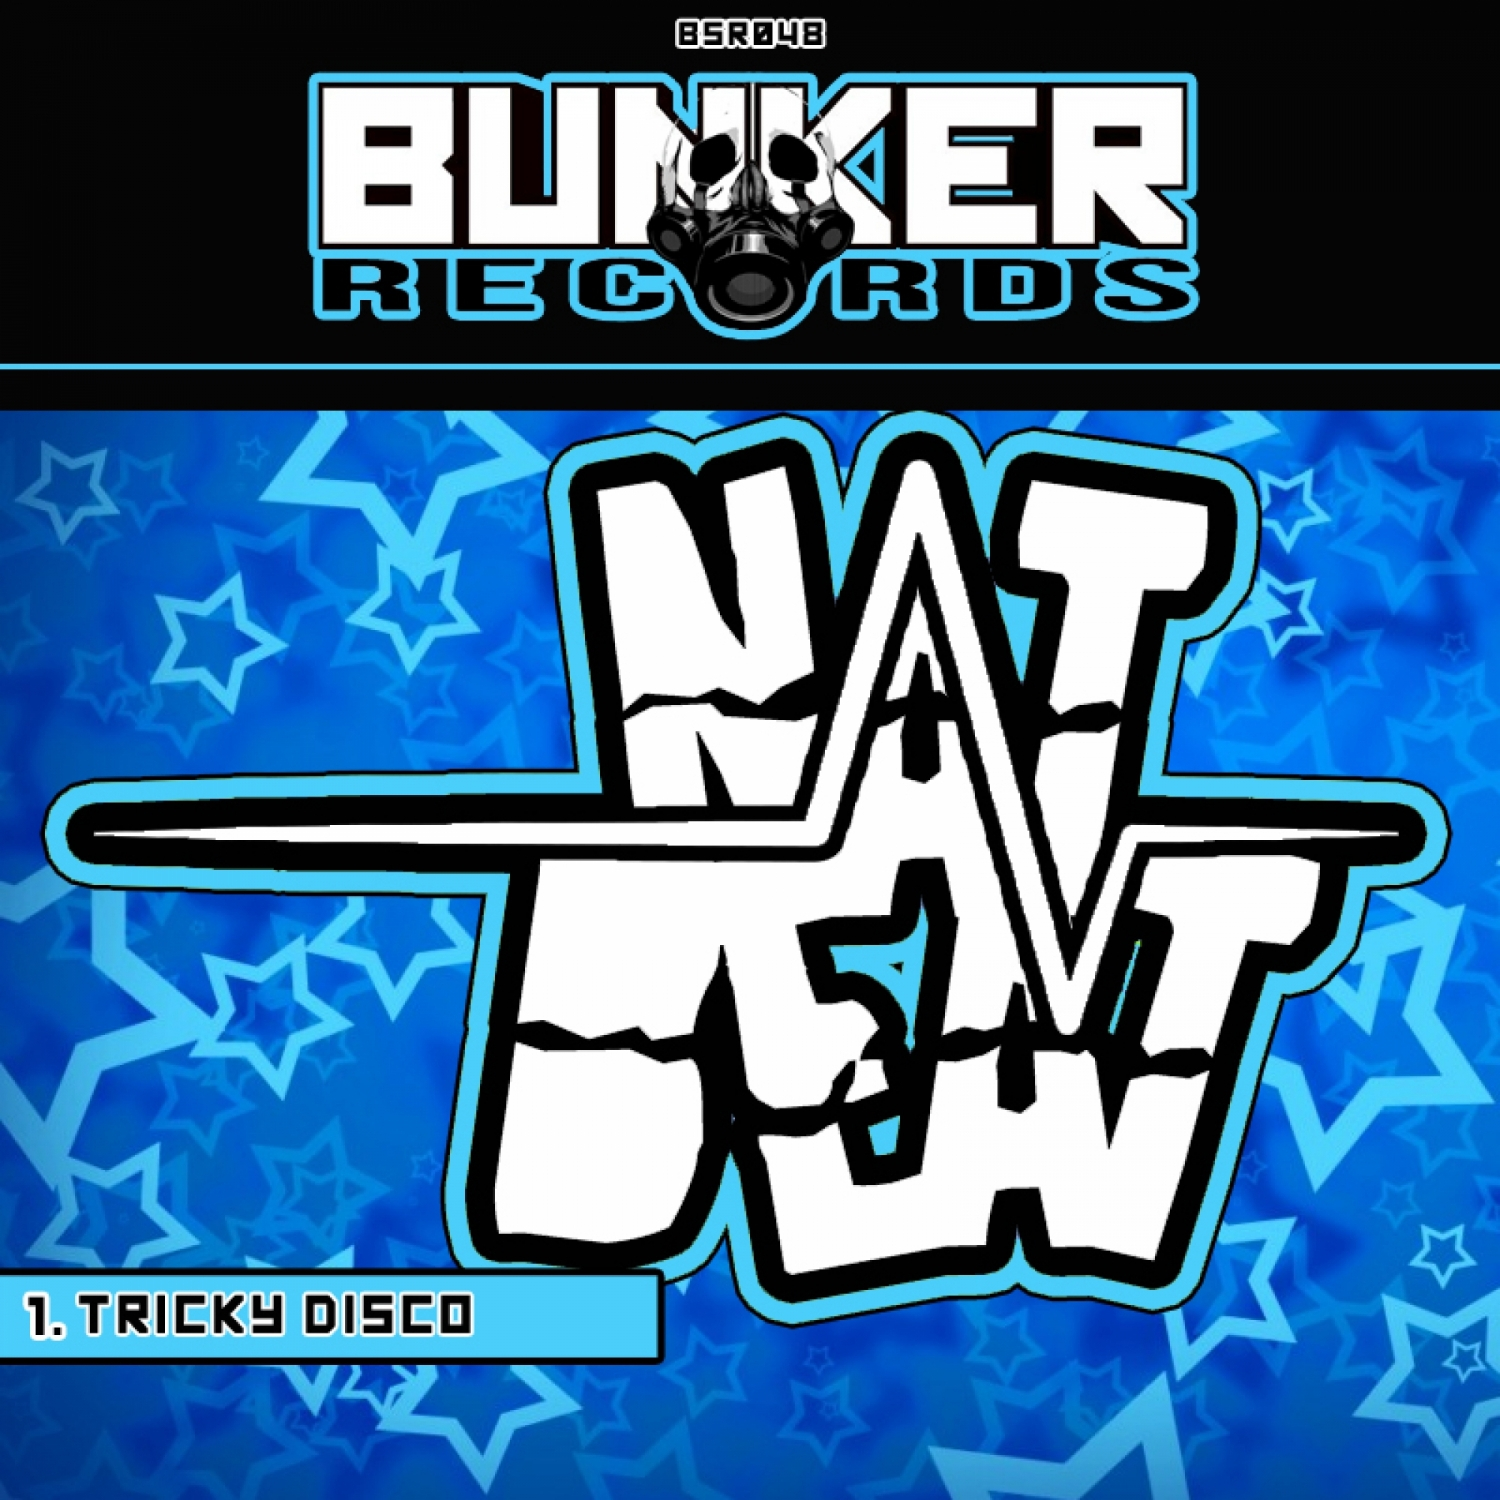 NaTBeaT - Tricky Disco (Original Mix)